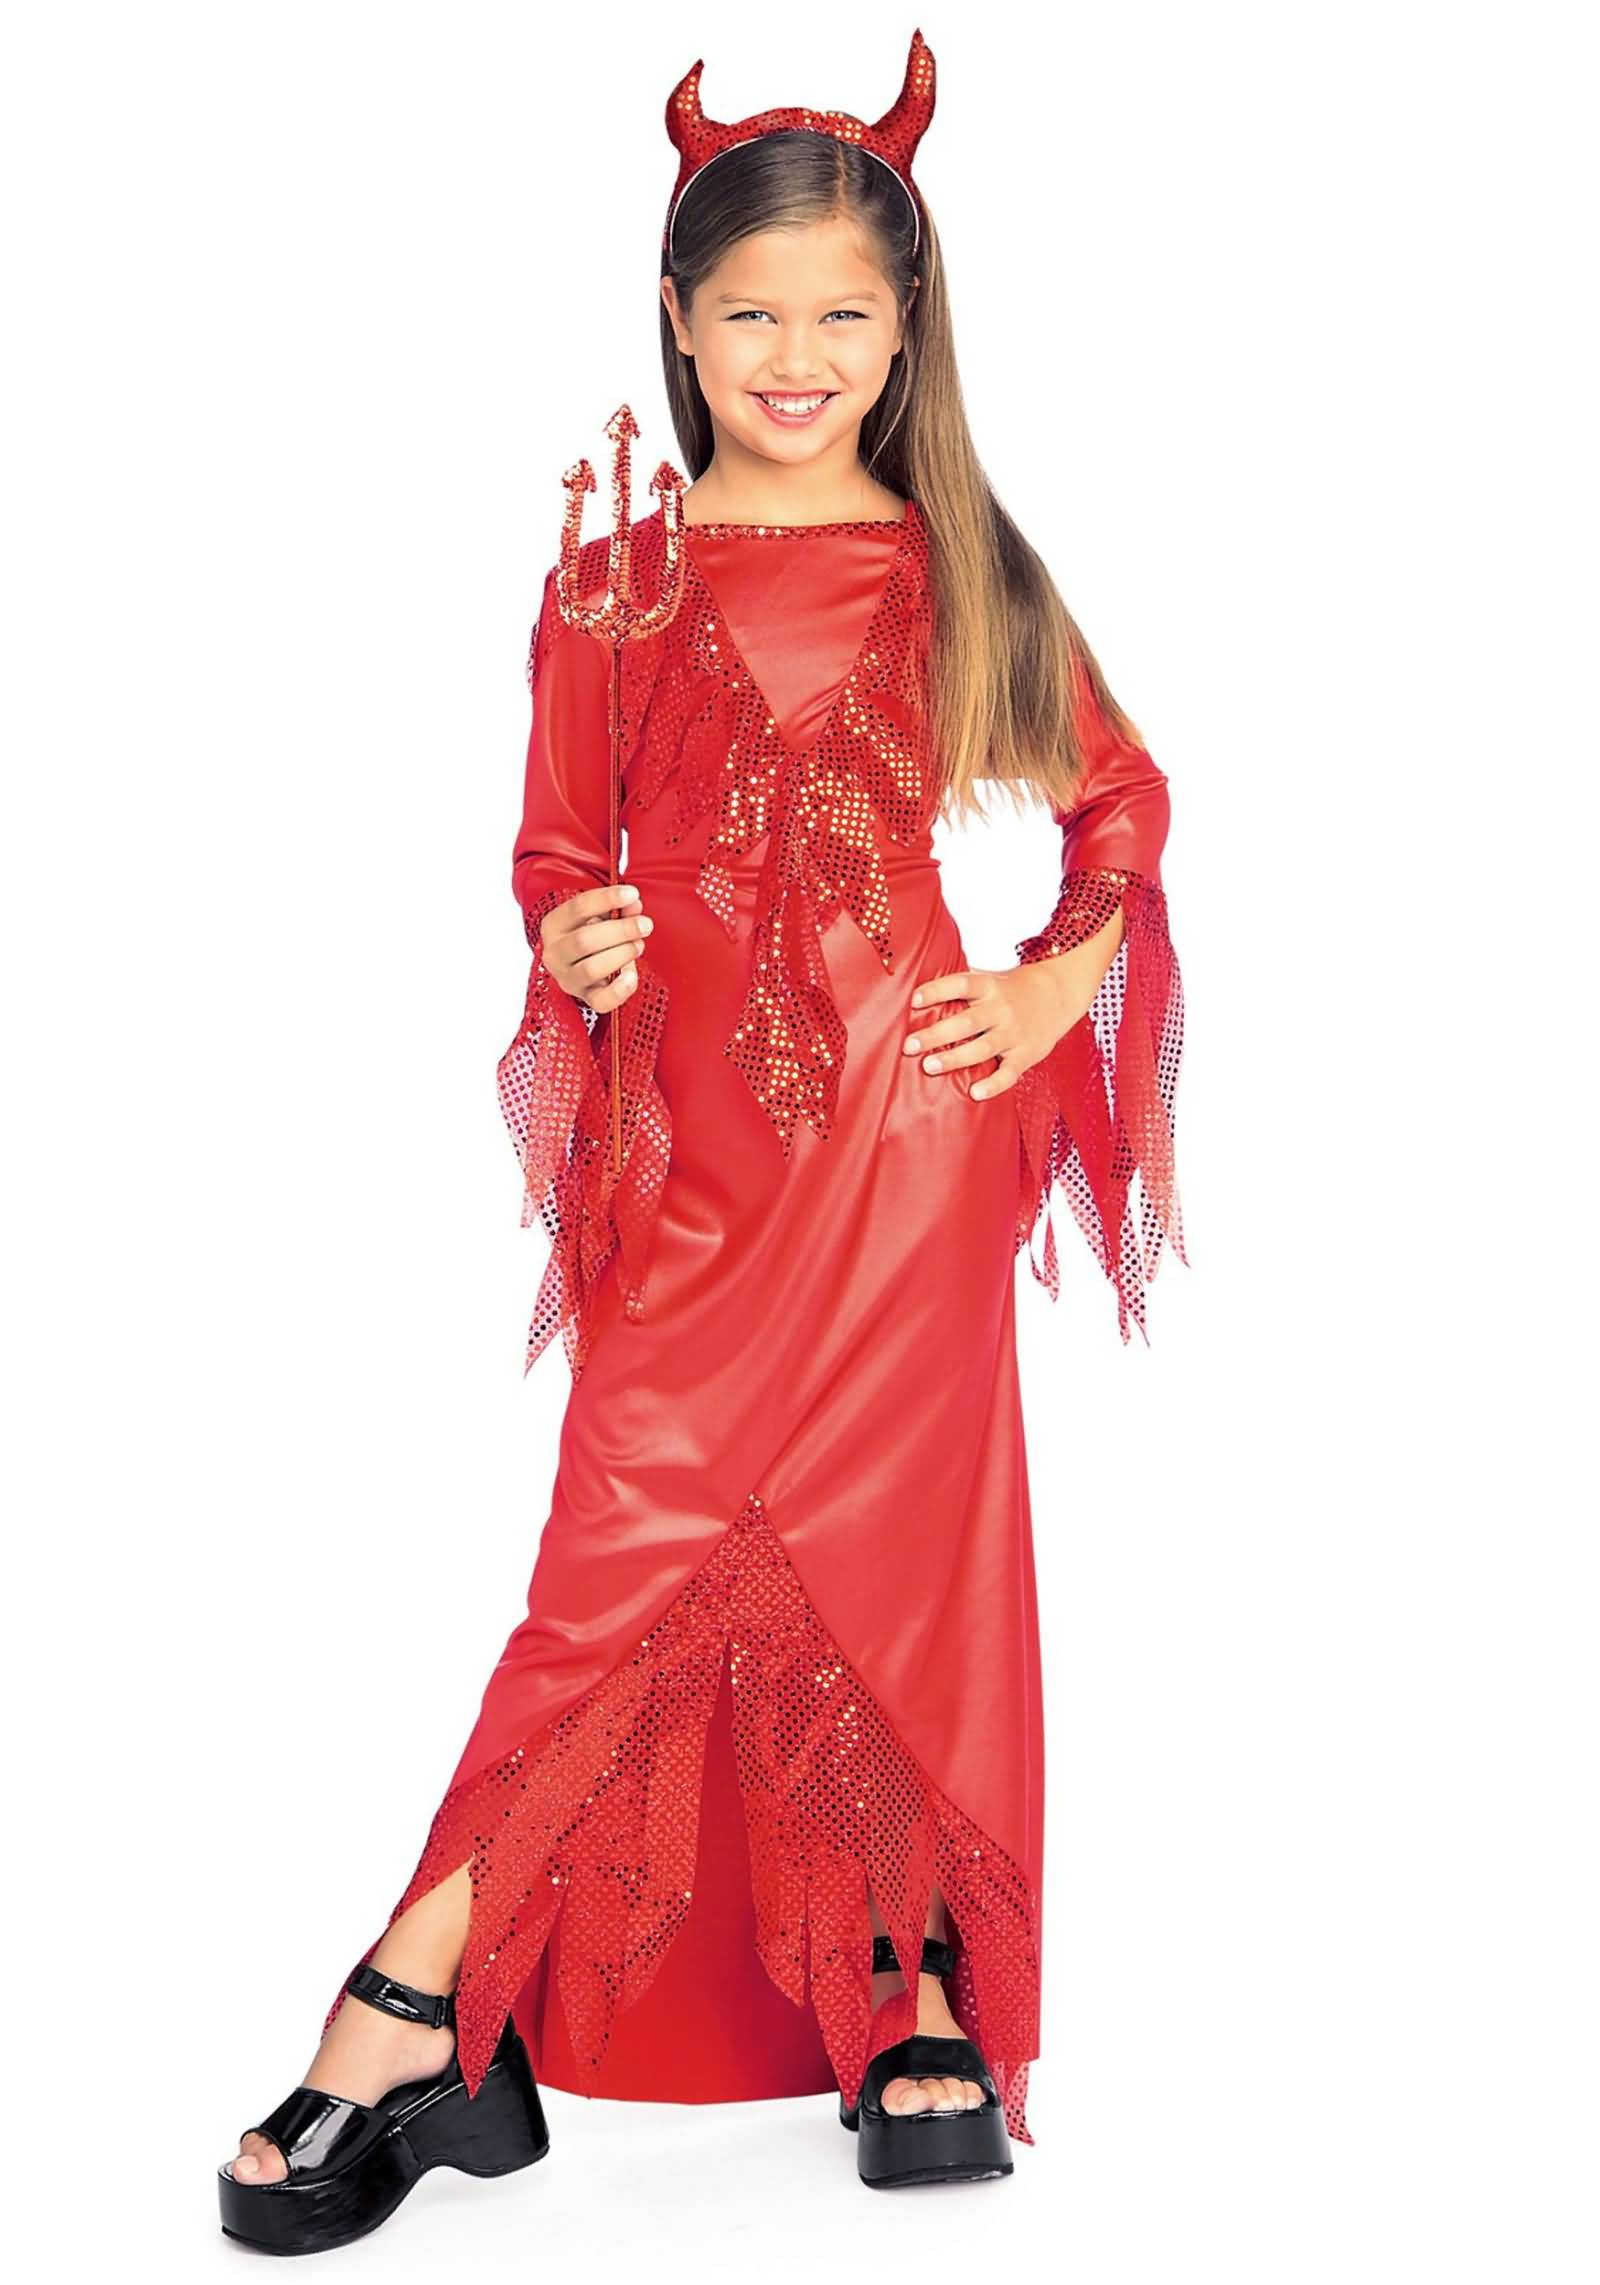 35 Most Scary And Beautiful Halloween Costumes Pictures - Beautiful Halloween Costumes